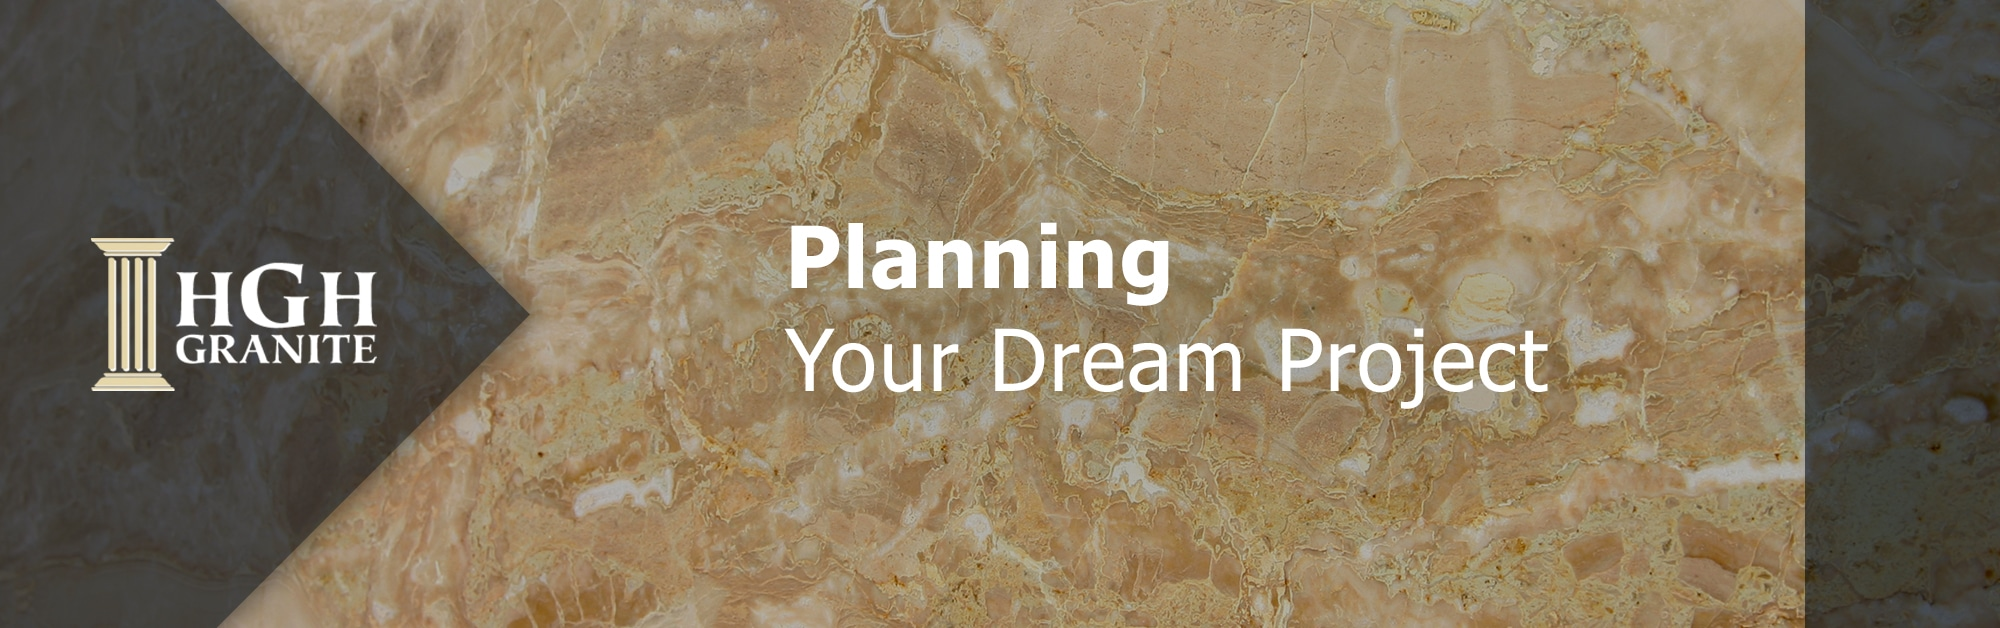 Planning Your Dream Project